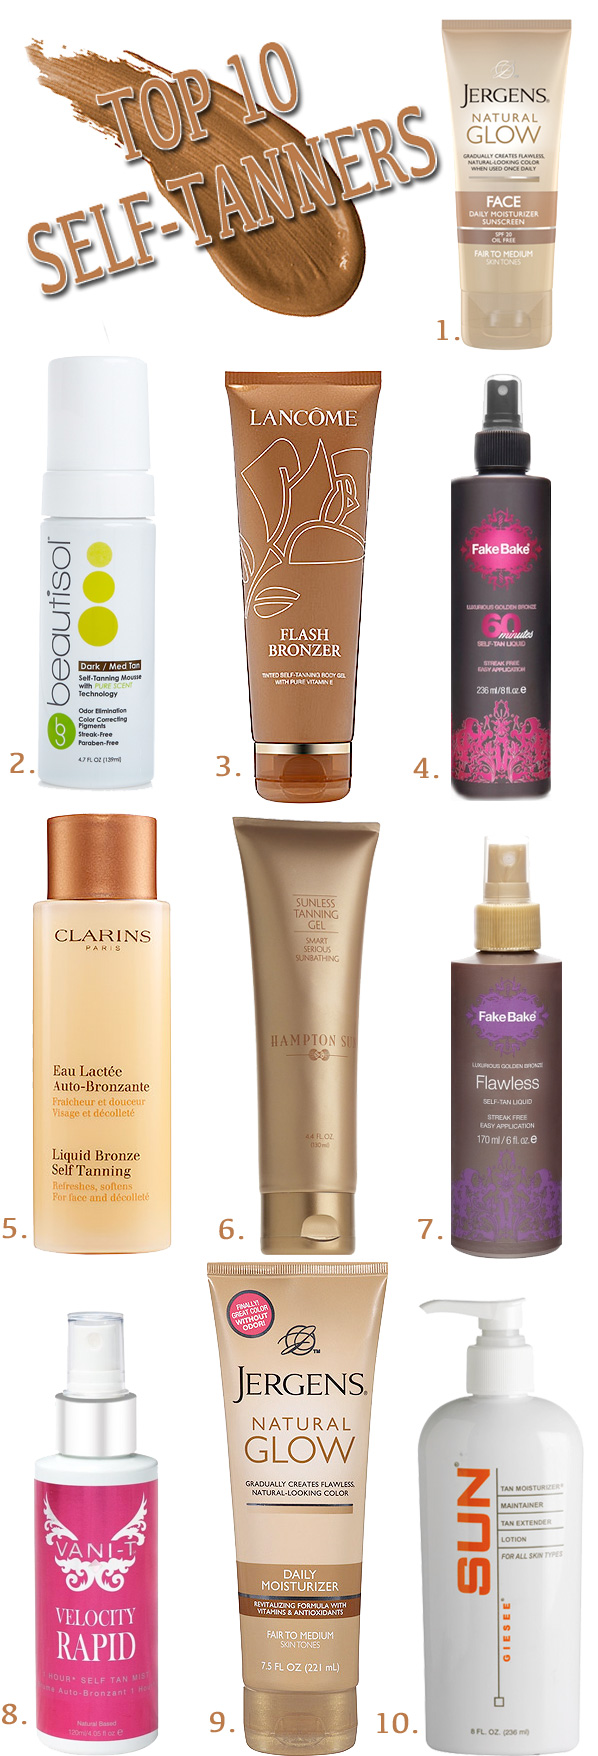 The 10 Best Self Tanners | Beautiful Makeup Search